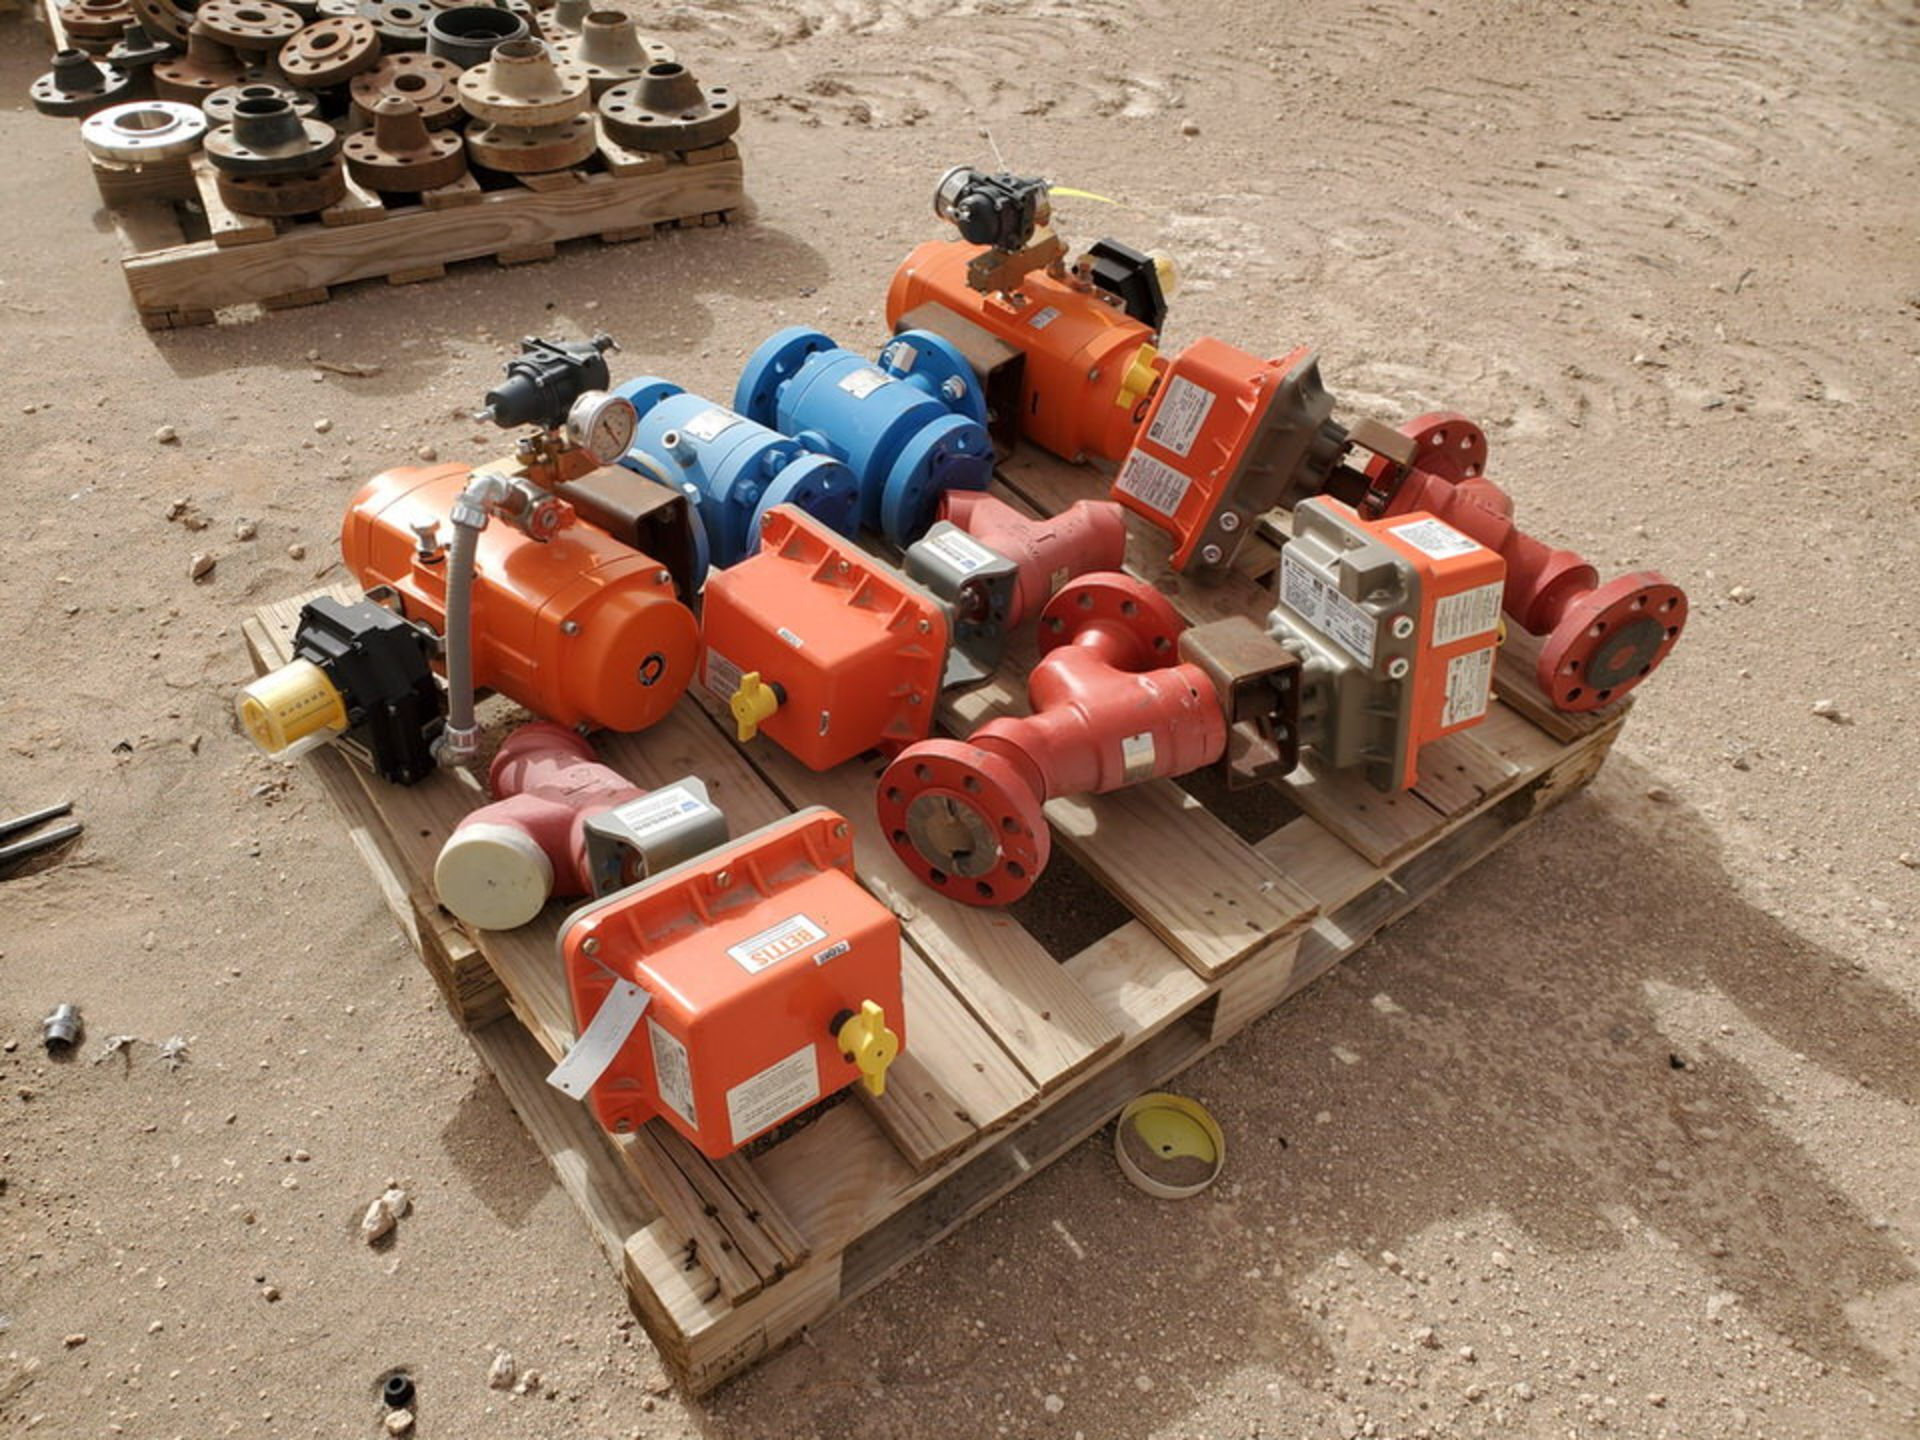 """GWC Assorted Actuated Valves (2) 2"""" x 2"""" 600# Ball Valves W/ Bettis Actuators; W/ (4) Taylor 2"""" 600# - Image 4 of 9"""